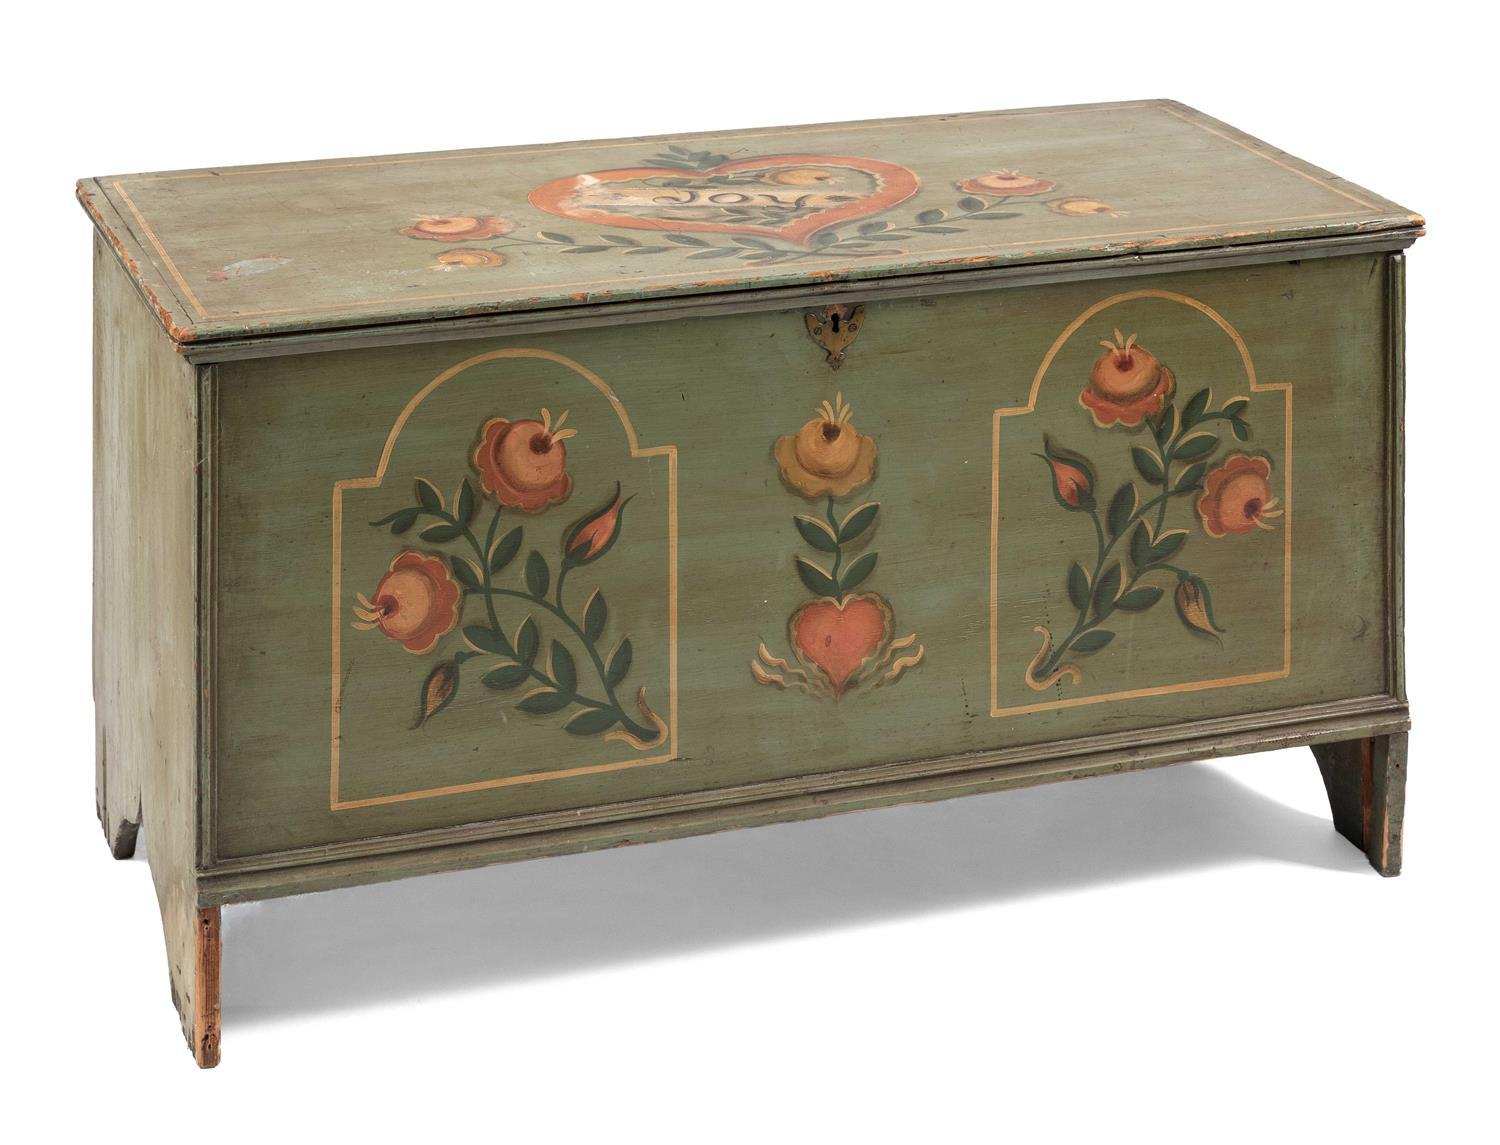 "RALPH AND MARTHA CAHOON, Cape Cod, 1910-1982 and 1905-1999, Pine six-board chest with painted decoration., Height 24.5"". Width 46""...."